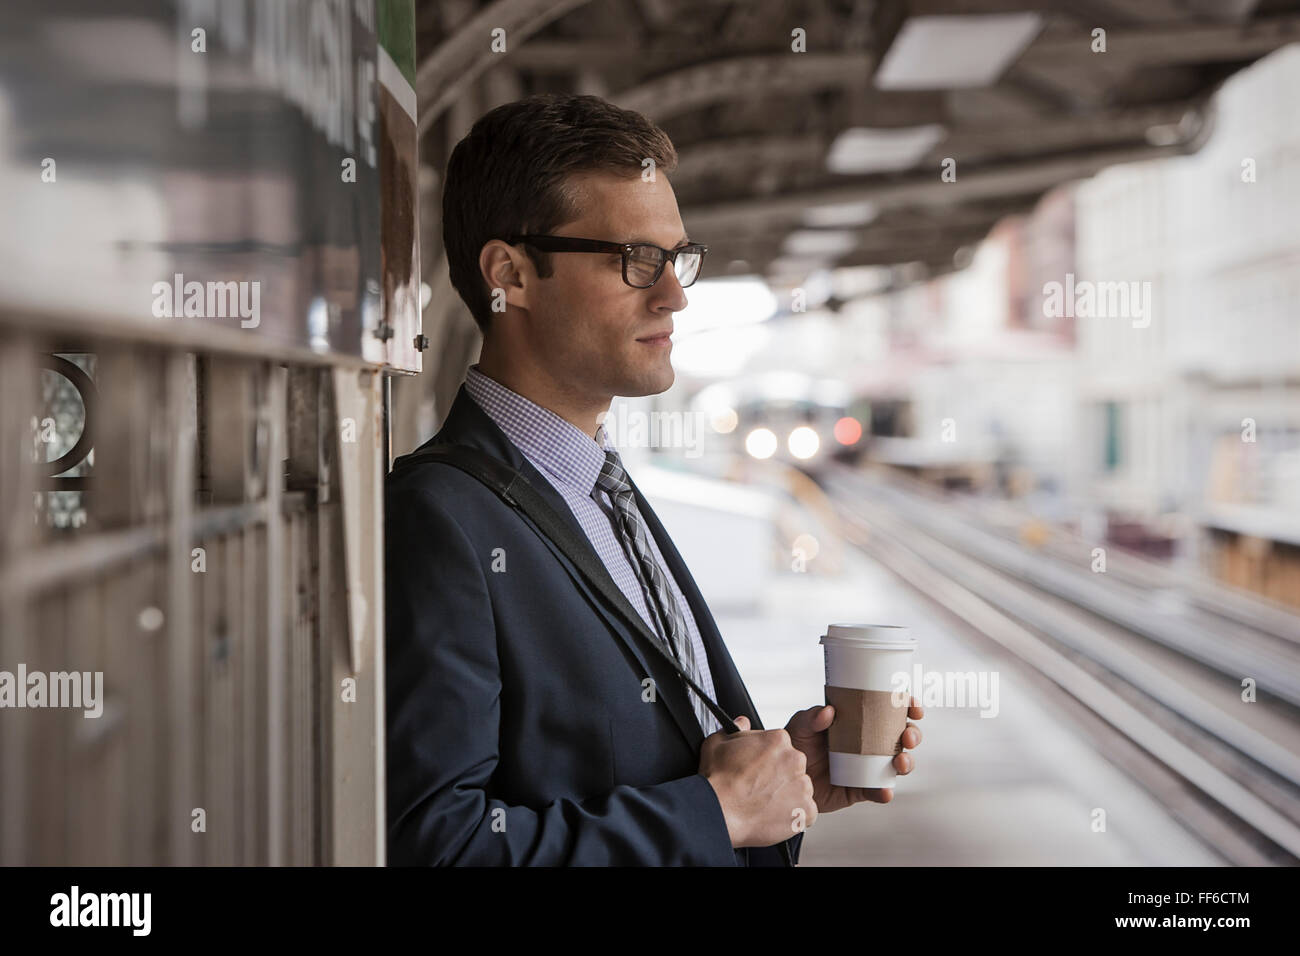 A working day. Businessman in a work suit and tie holding a cup of coffee on a railway platform. - Stock Image